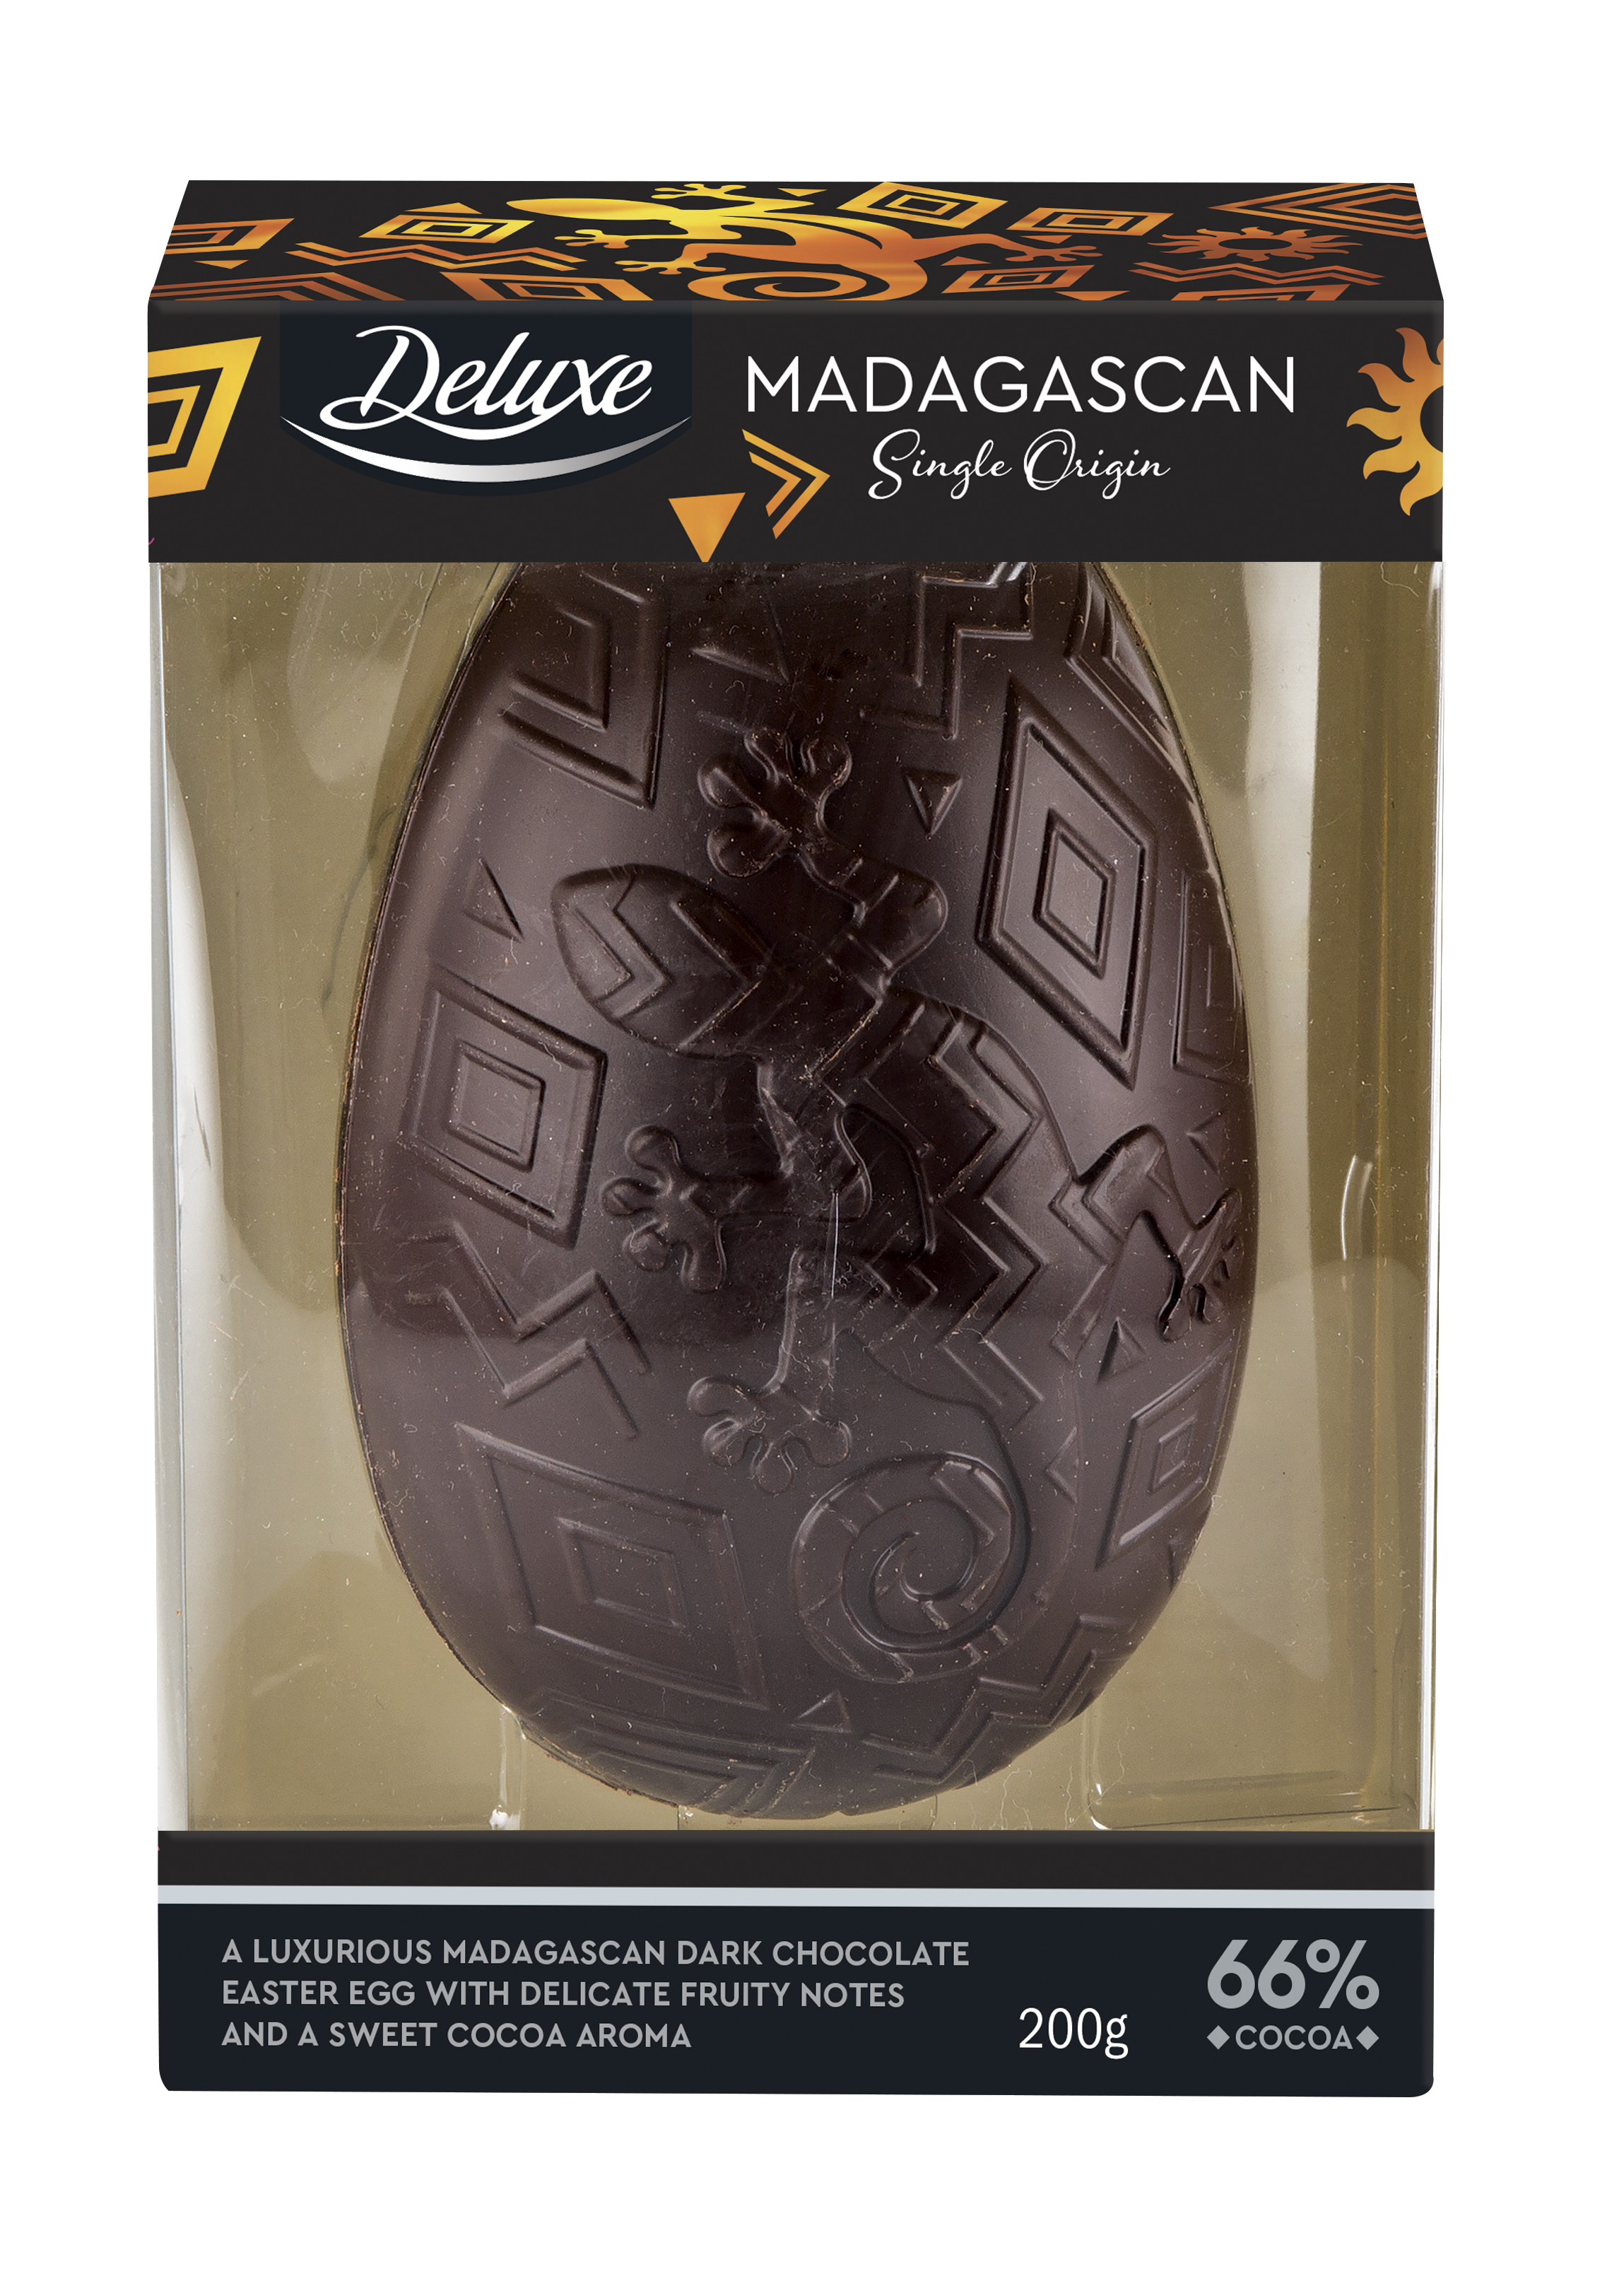 Lidl is releasing a ridiculously fancy €7 dark chocolate Easter egg and we're there